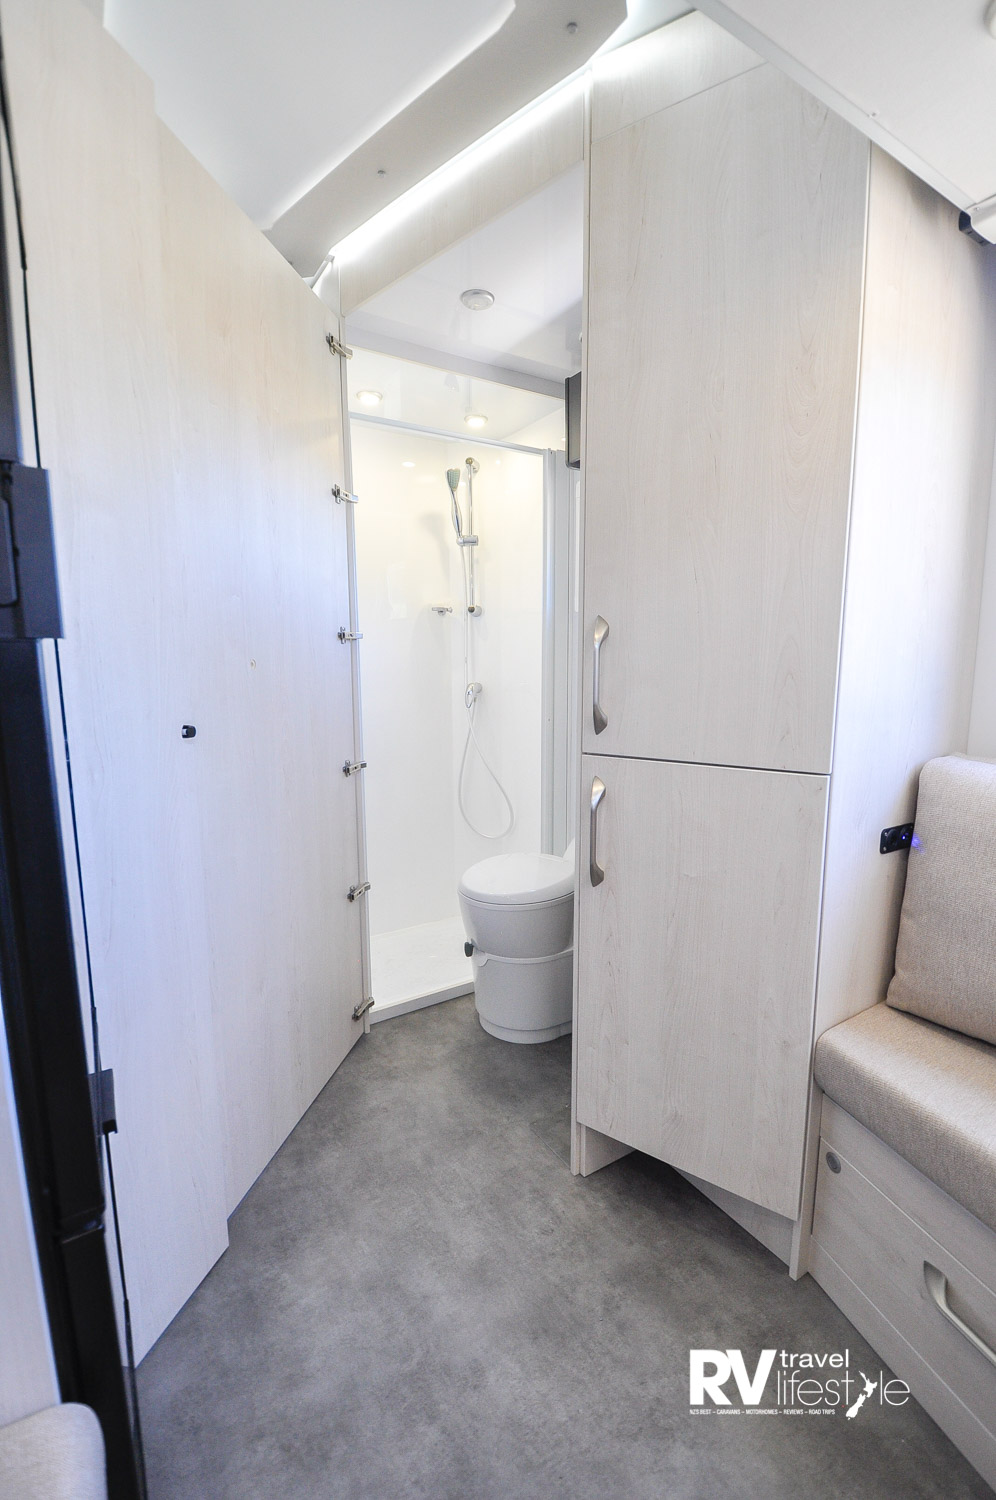 The midship bathroom has a full height shower, pedestal toilet; the door opens across to the kitchen bench to create a privacy area.